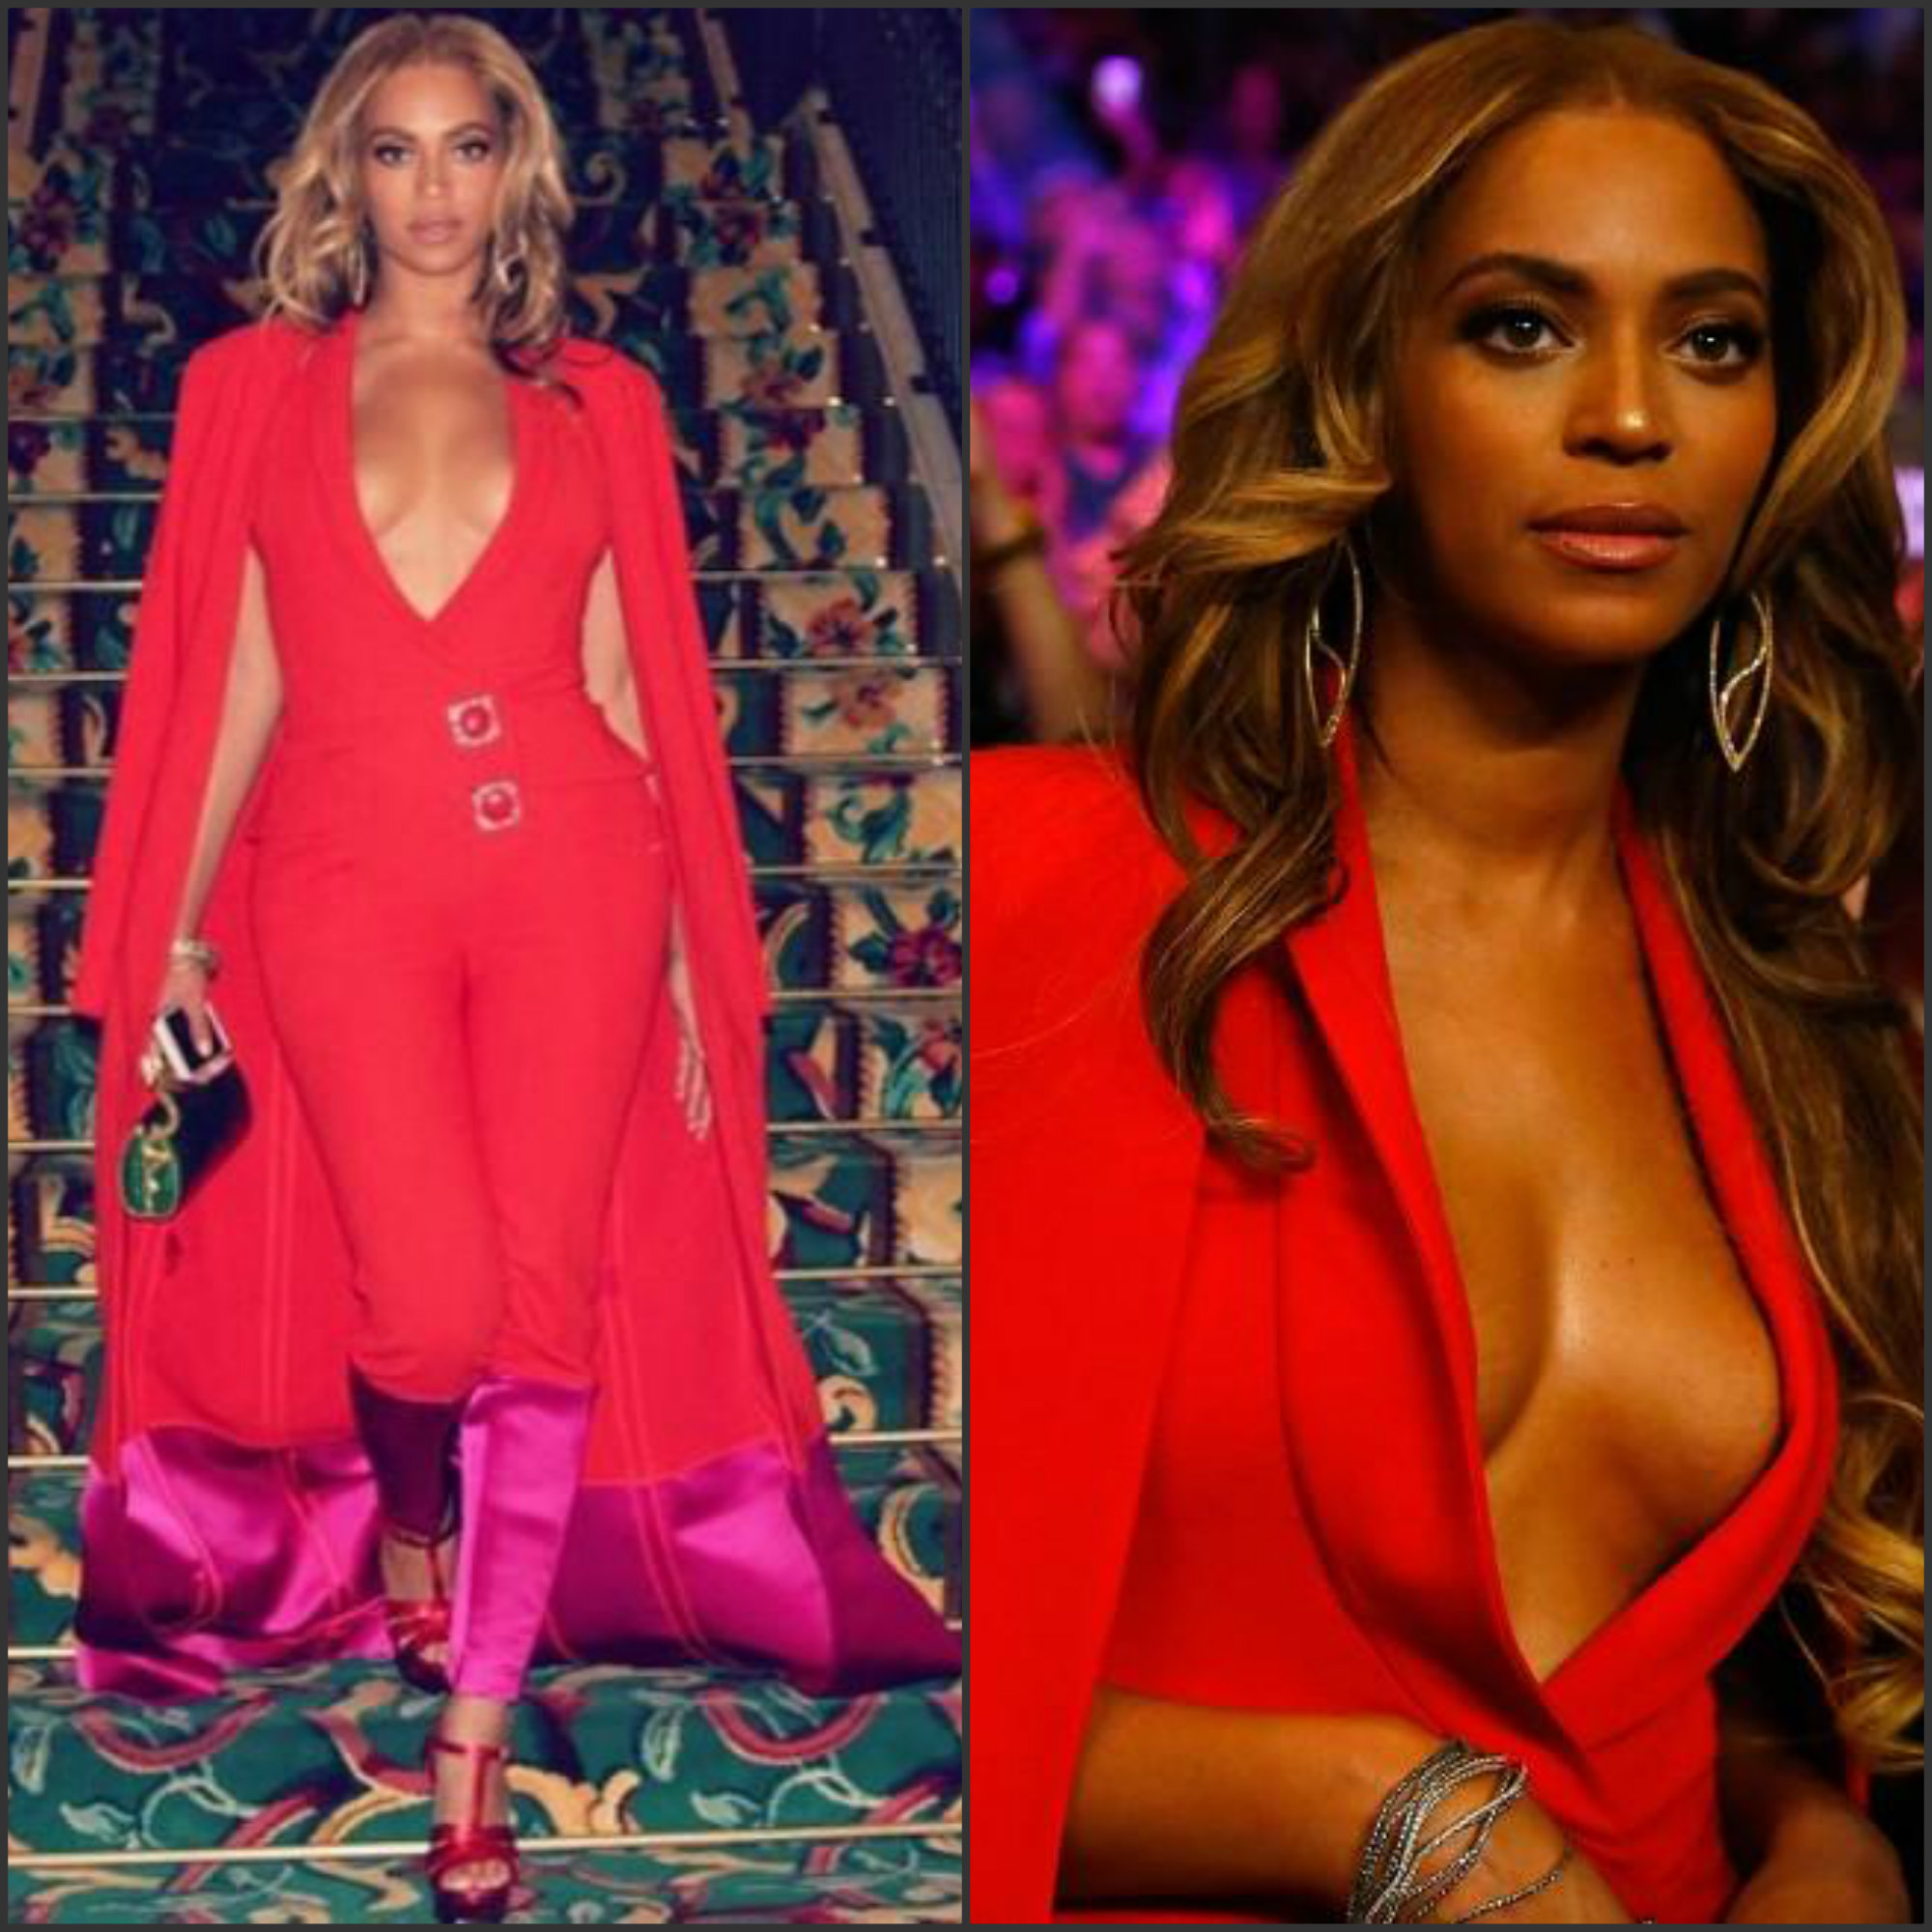 beyonce-in-harbison-at-the-floyd-mayweather-jr-vs-Manny-Pacquiao-fight